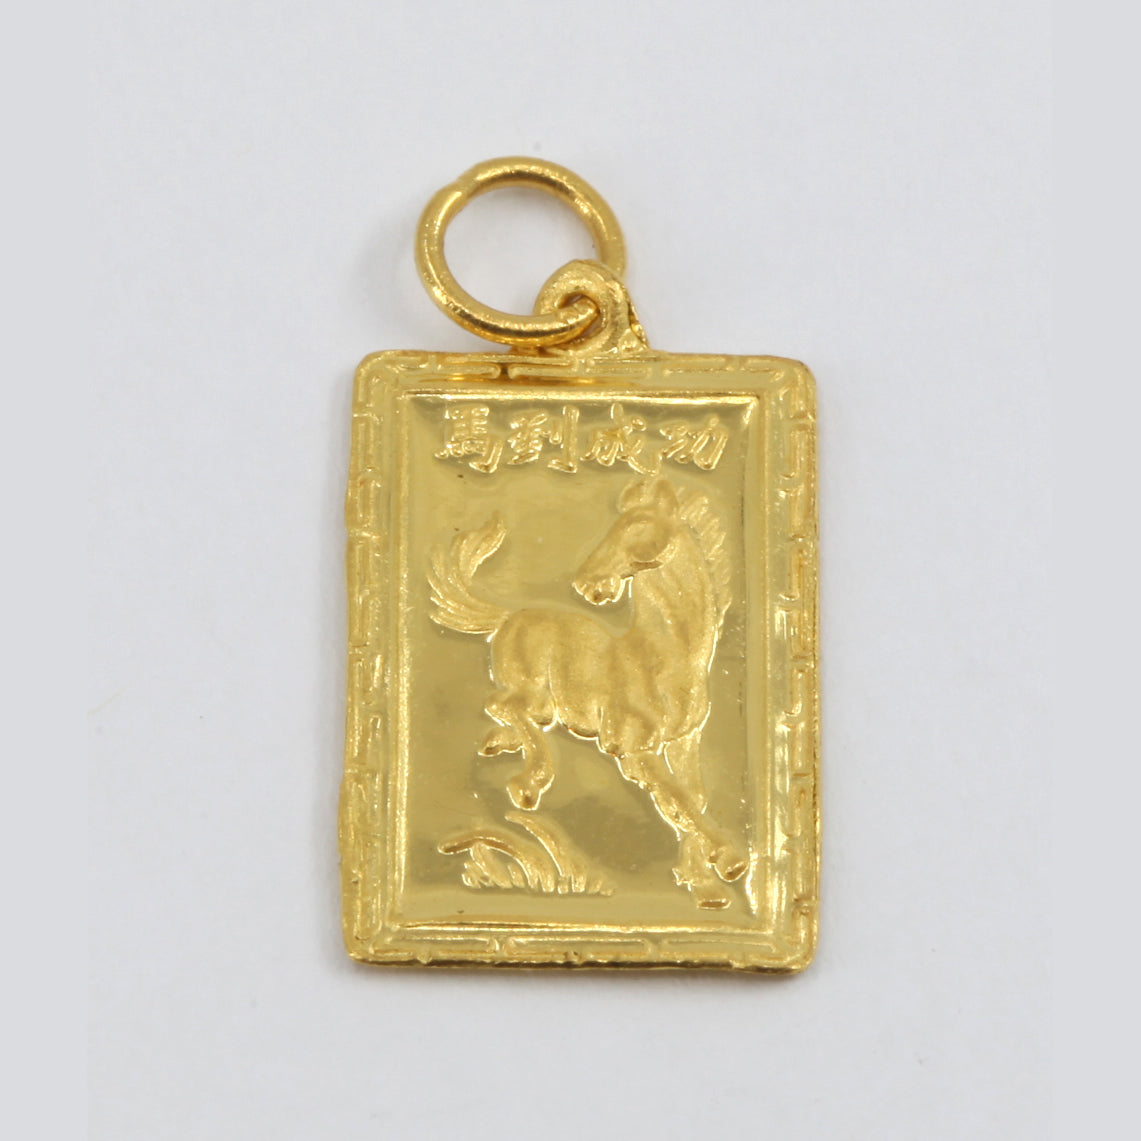 24K Solid Yellow Gold Rectangular Zodiac Horse Hollow Pendant 1.5 Grams